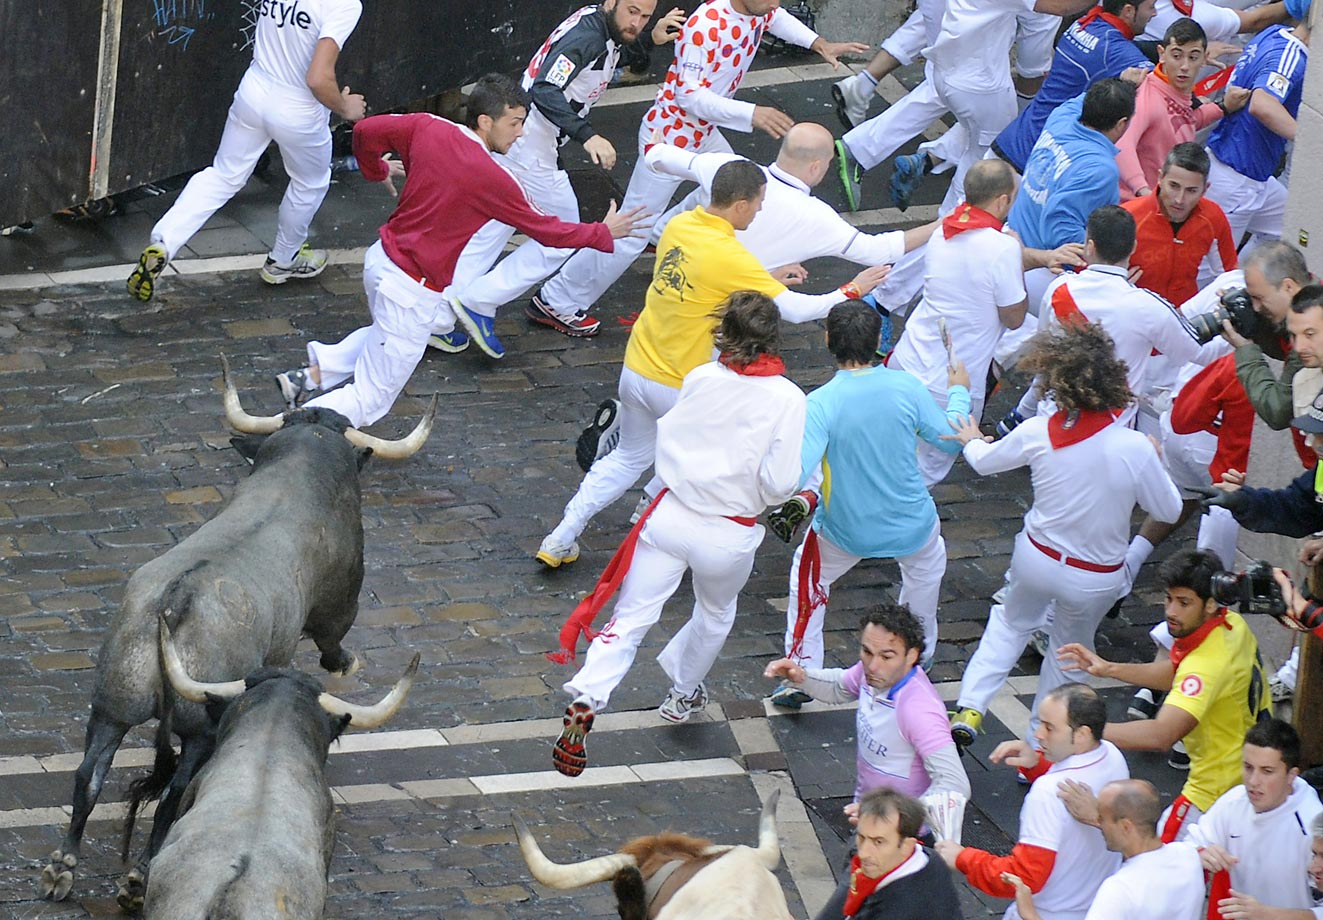 Participants run in front of Adolfo Martin's bulls during the seventh day of the Running Of The Bulls at the San Fermin Festival in Pamplona, Spain, on July 13, 2014. The festival is a symbol of Spanish culture that attracts thousands of tourists to watch the bull runs, despite heavy condemnation from animal rights groups.